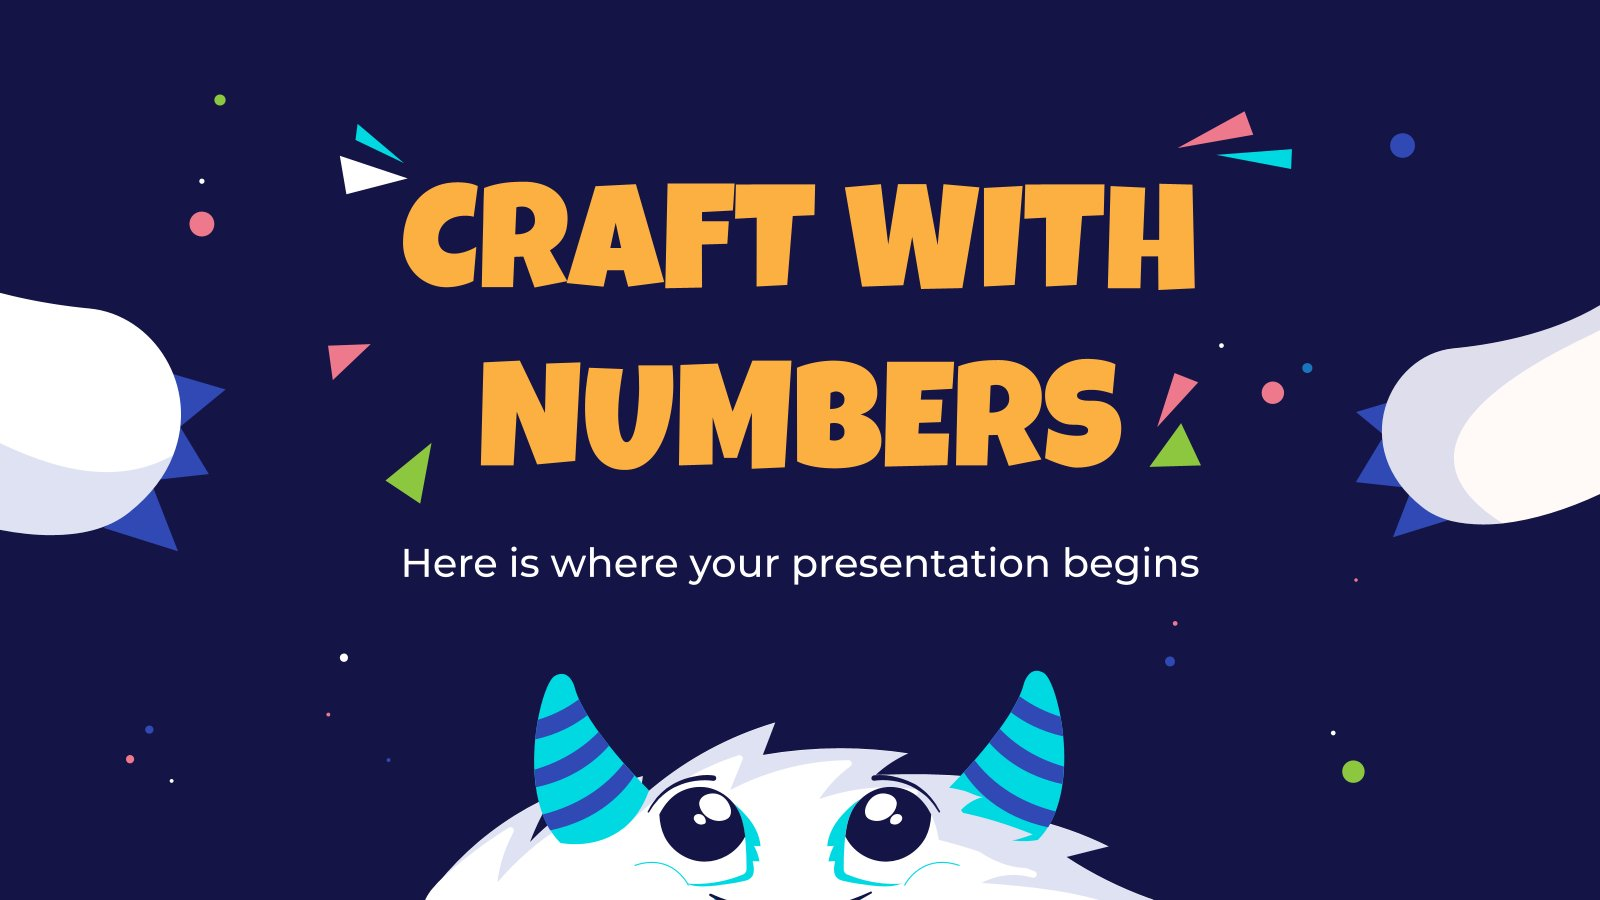 Craft With Numbers presentation template